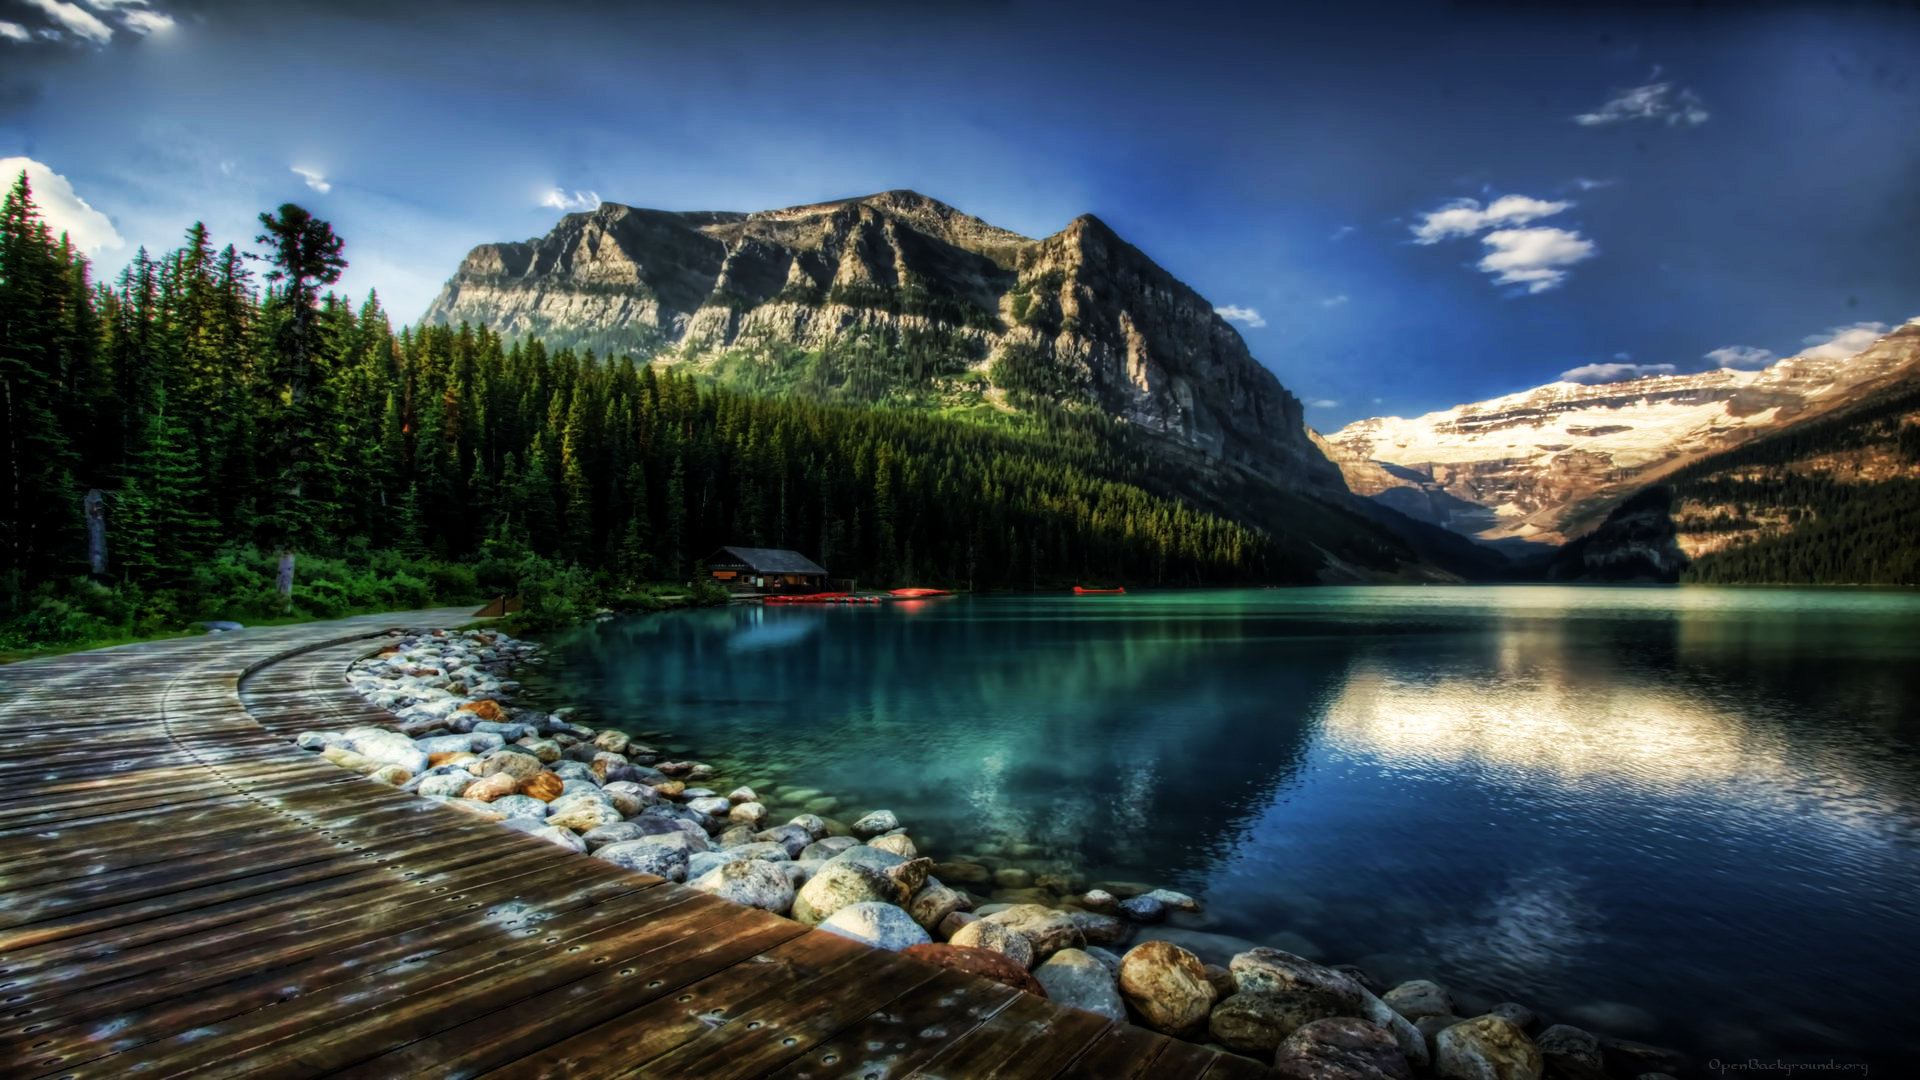 download 1080p canada wallpapers the home of the grizzly bear ForWallpaper Canada